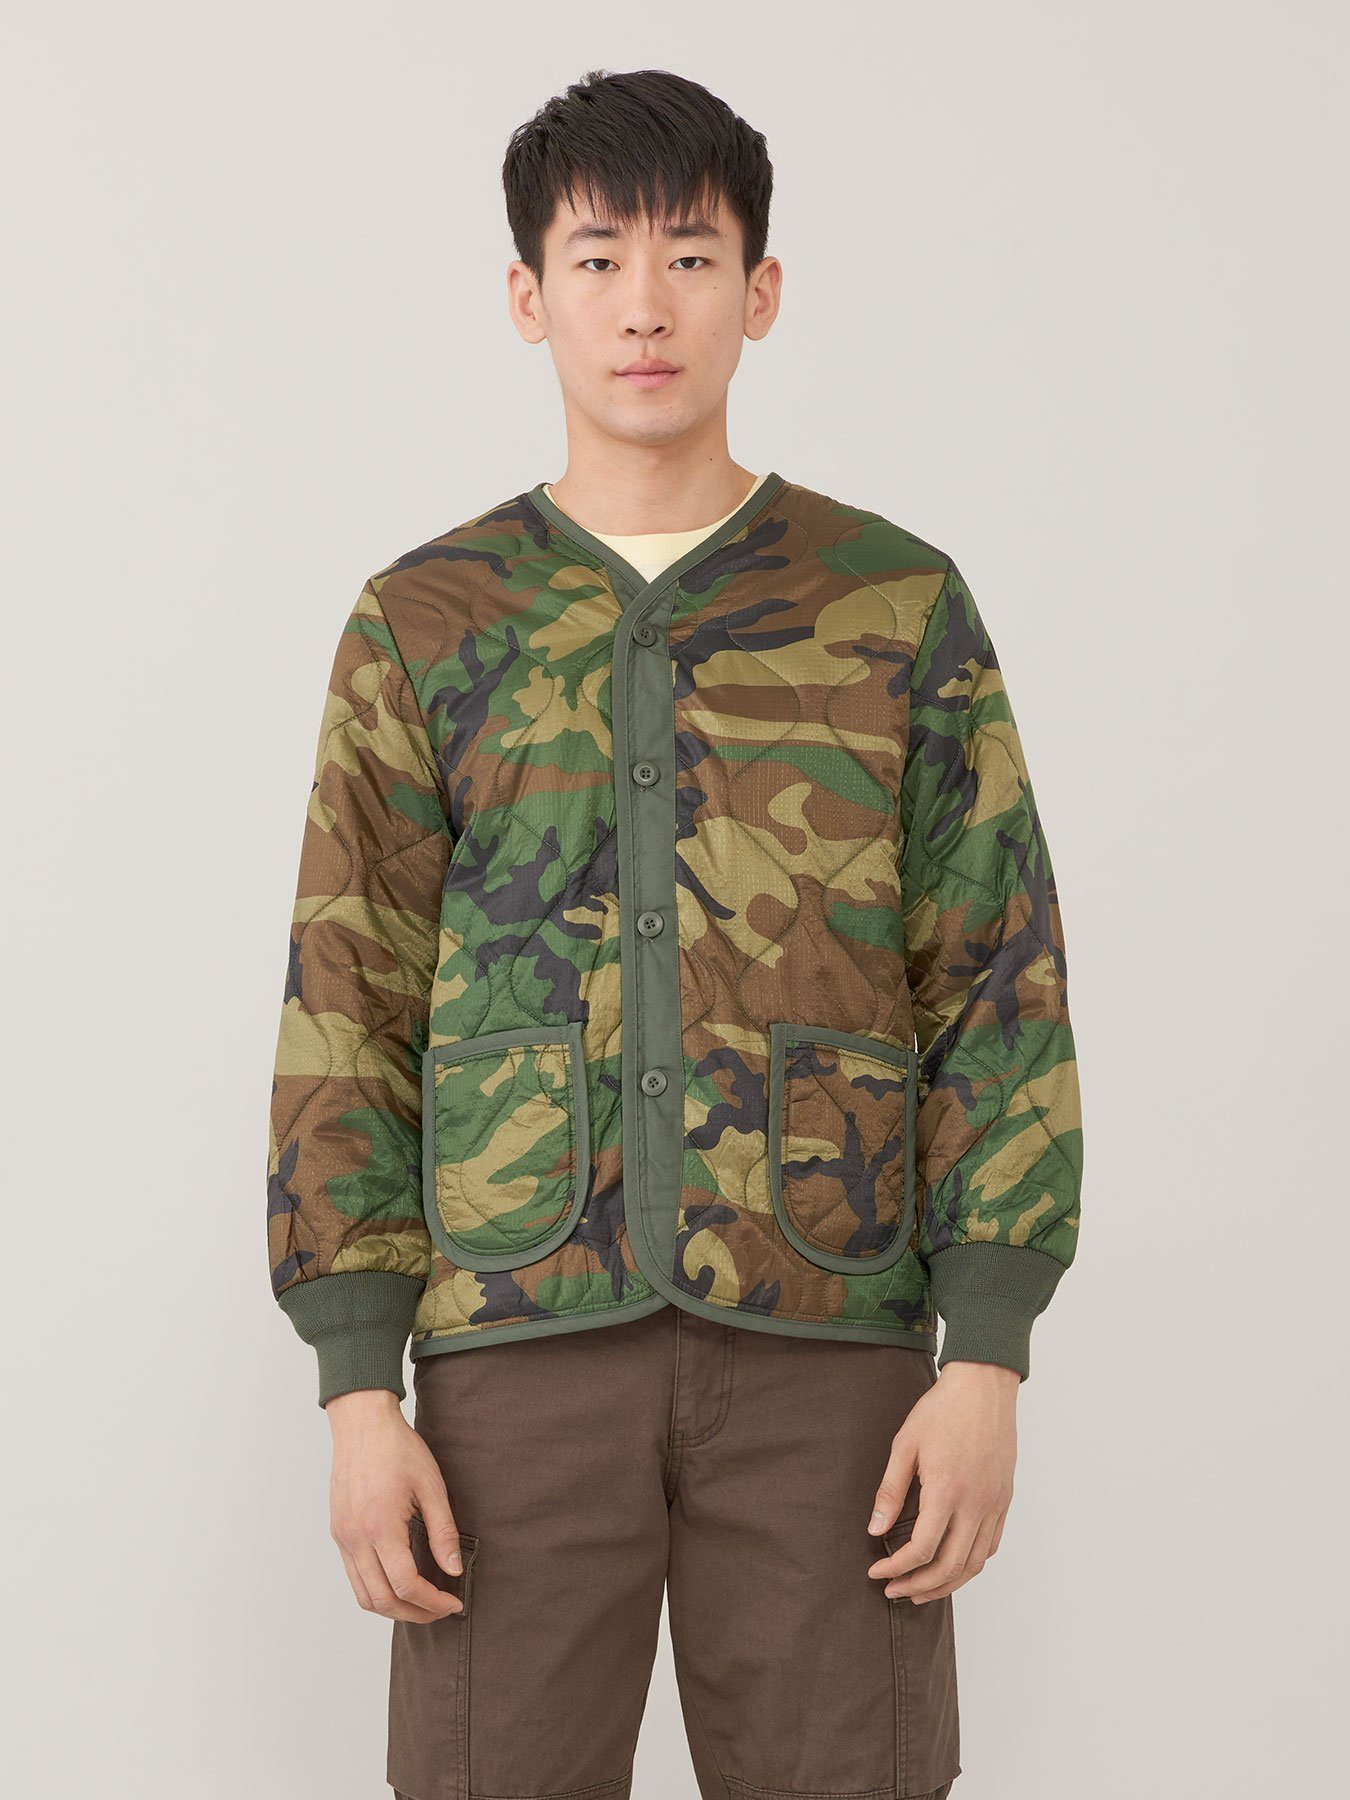 M-65 DEFENDER LINER OUTERWEAR Alpha Industries WOODLAND CAMO 2XL